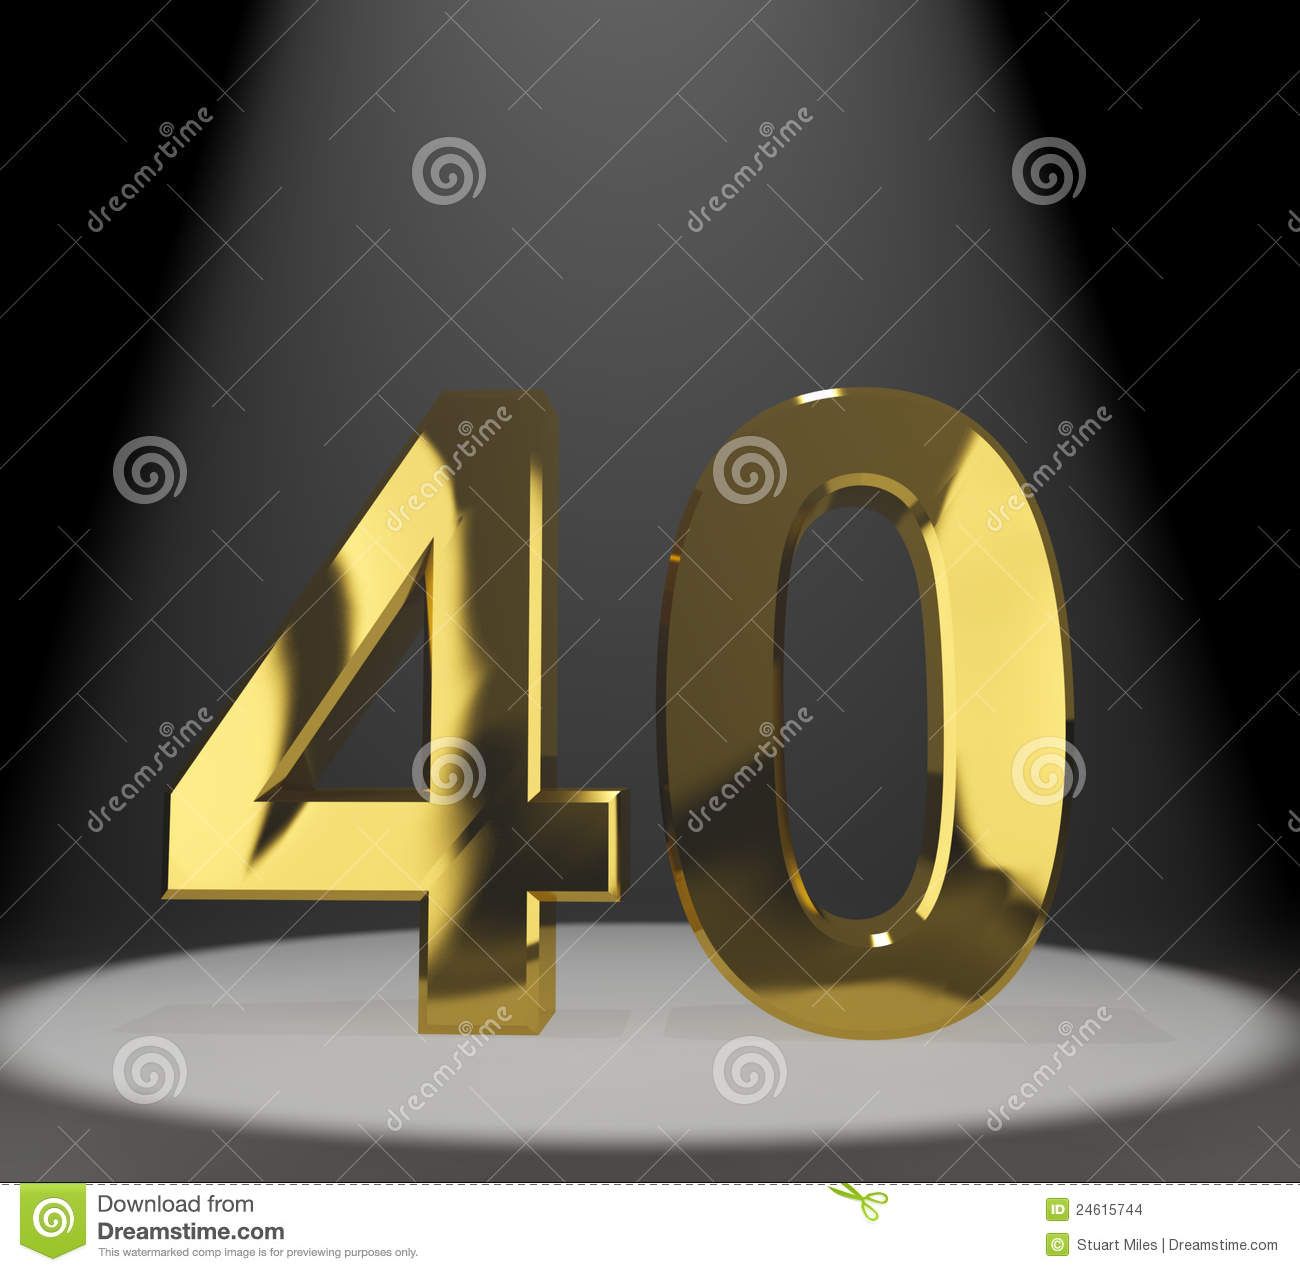 how to get 40 of a number